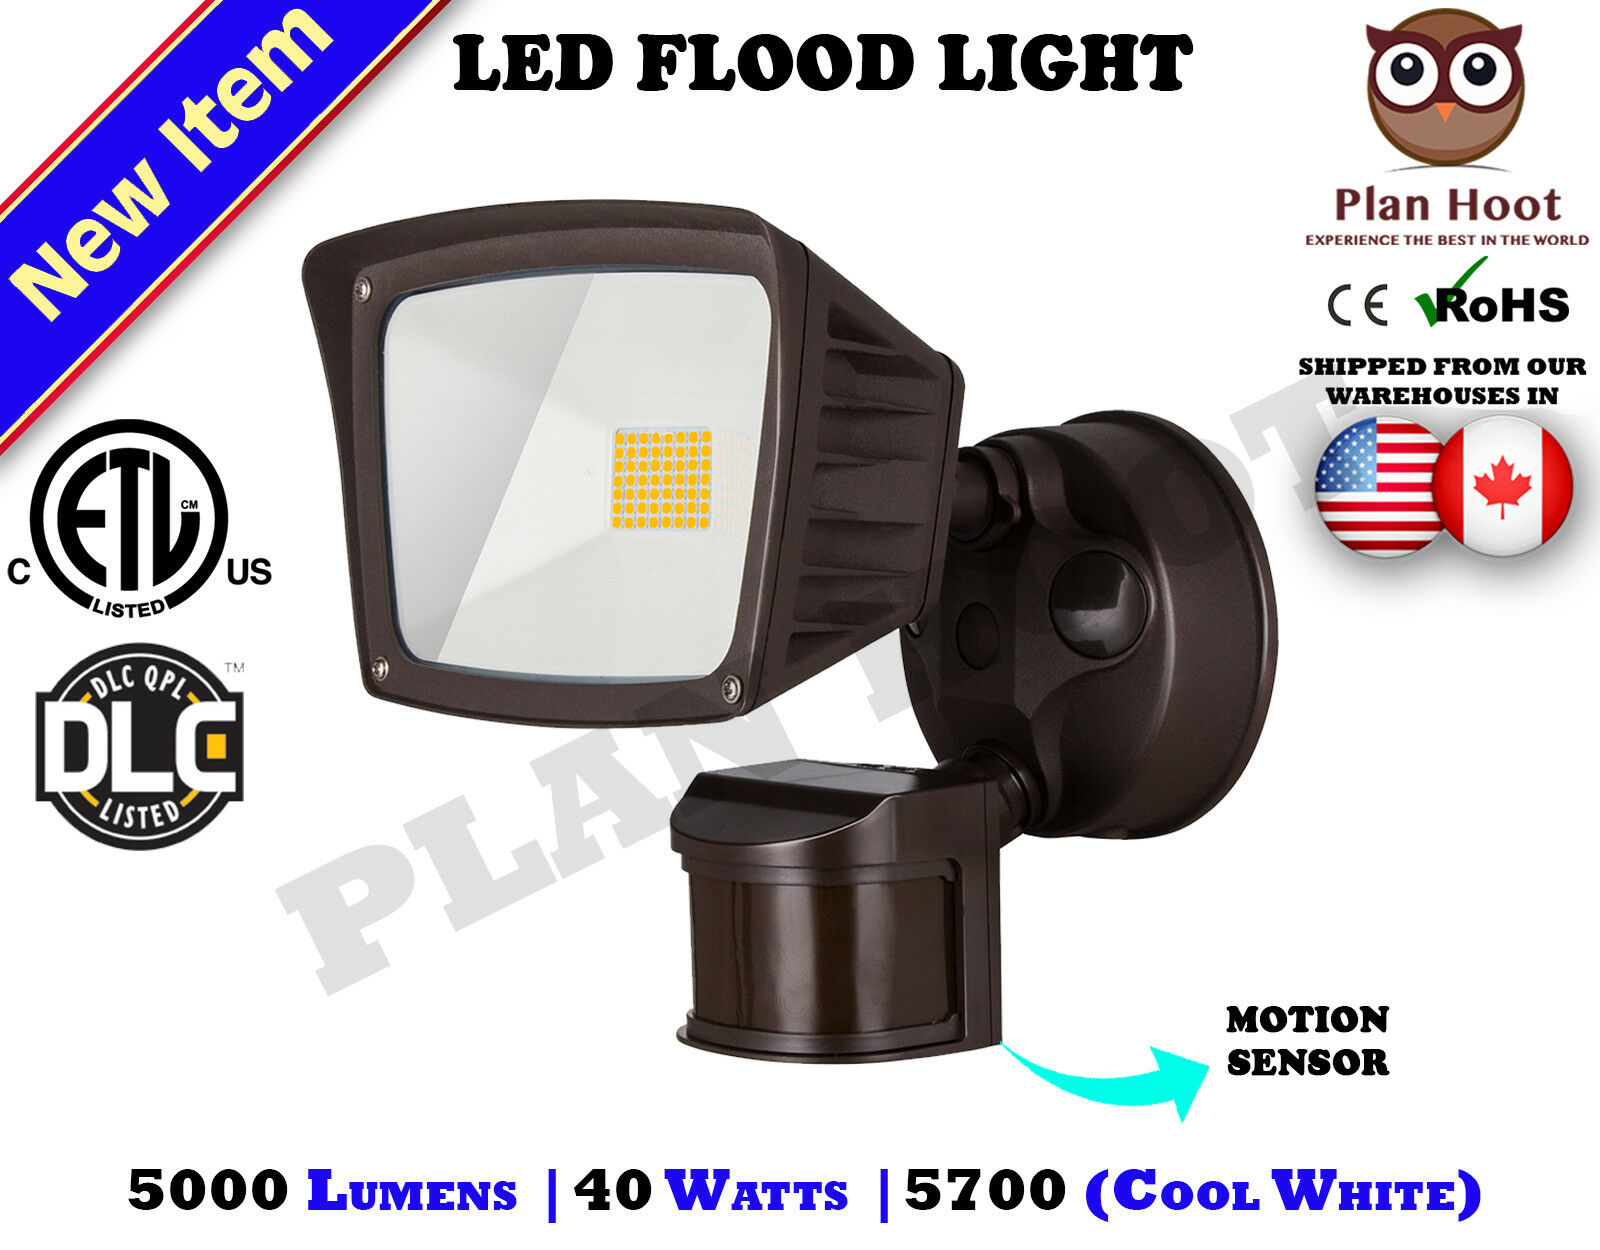 40WT Bronze Motion Sensor Activated ETL DLC LED Flood Outdoo